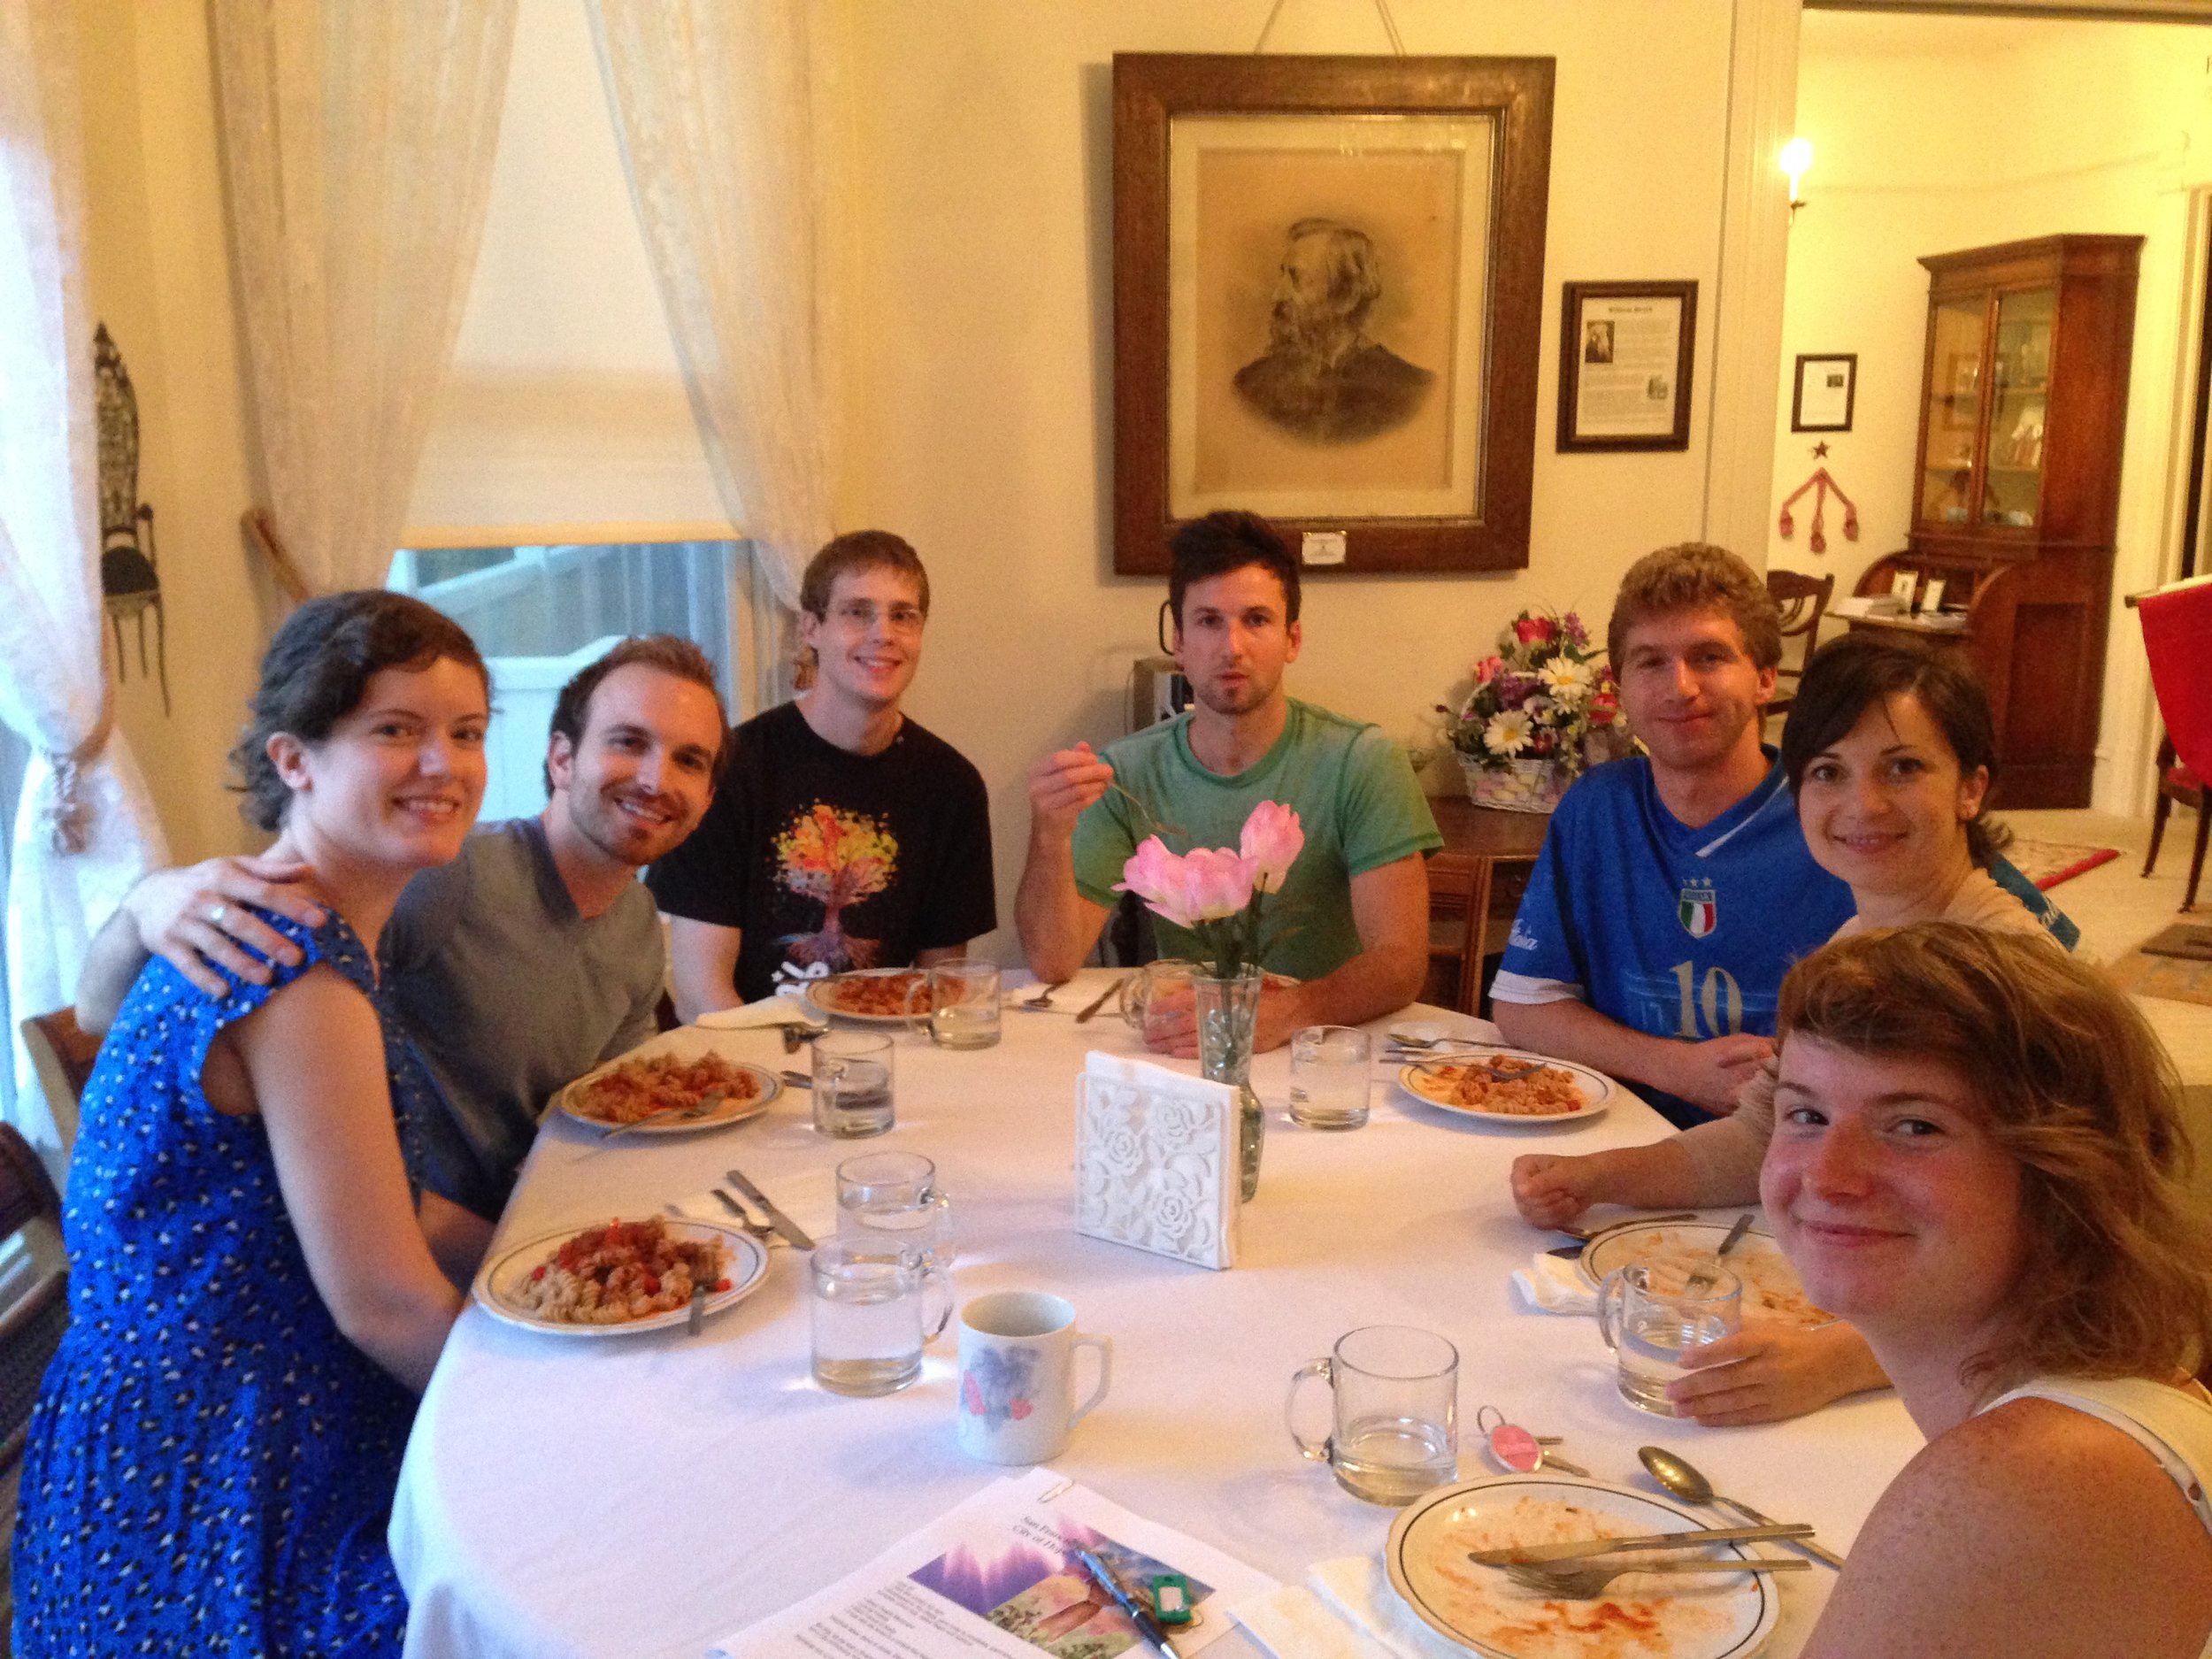 Our Destiny House family with William Booth inside the Home of Peace. Jenny, James, Nick, Lukus, Michael, Simona, and Elisa.